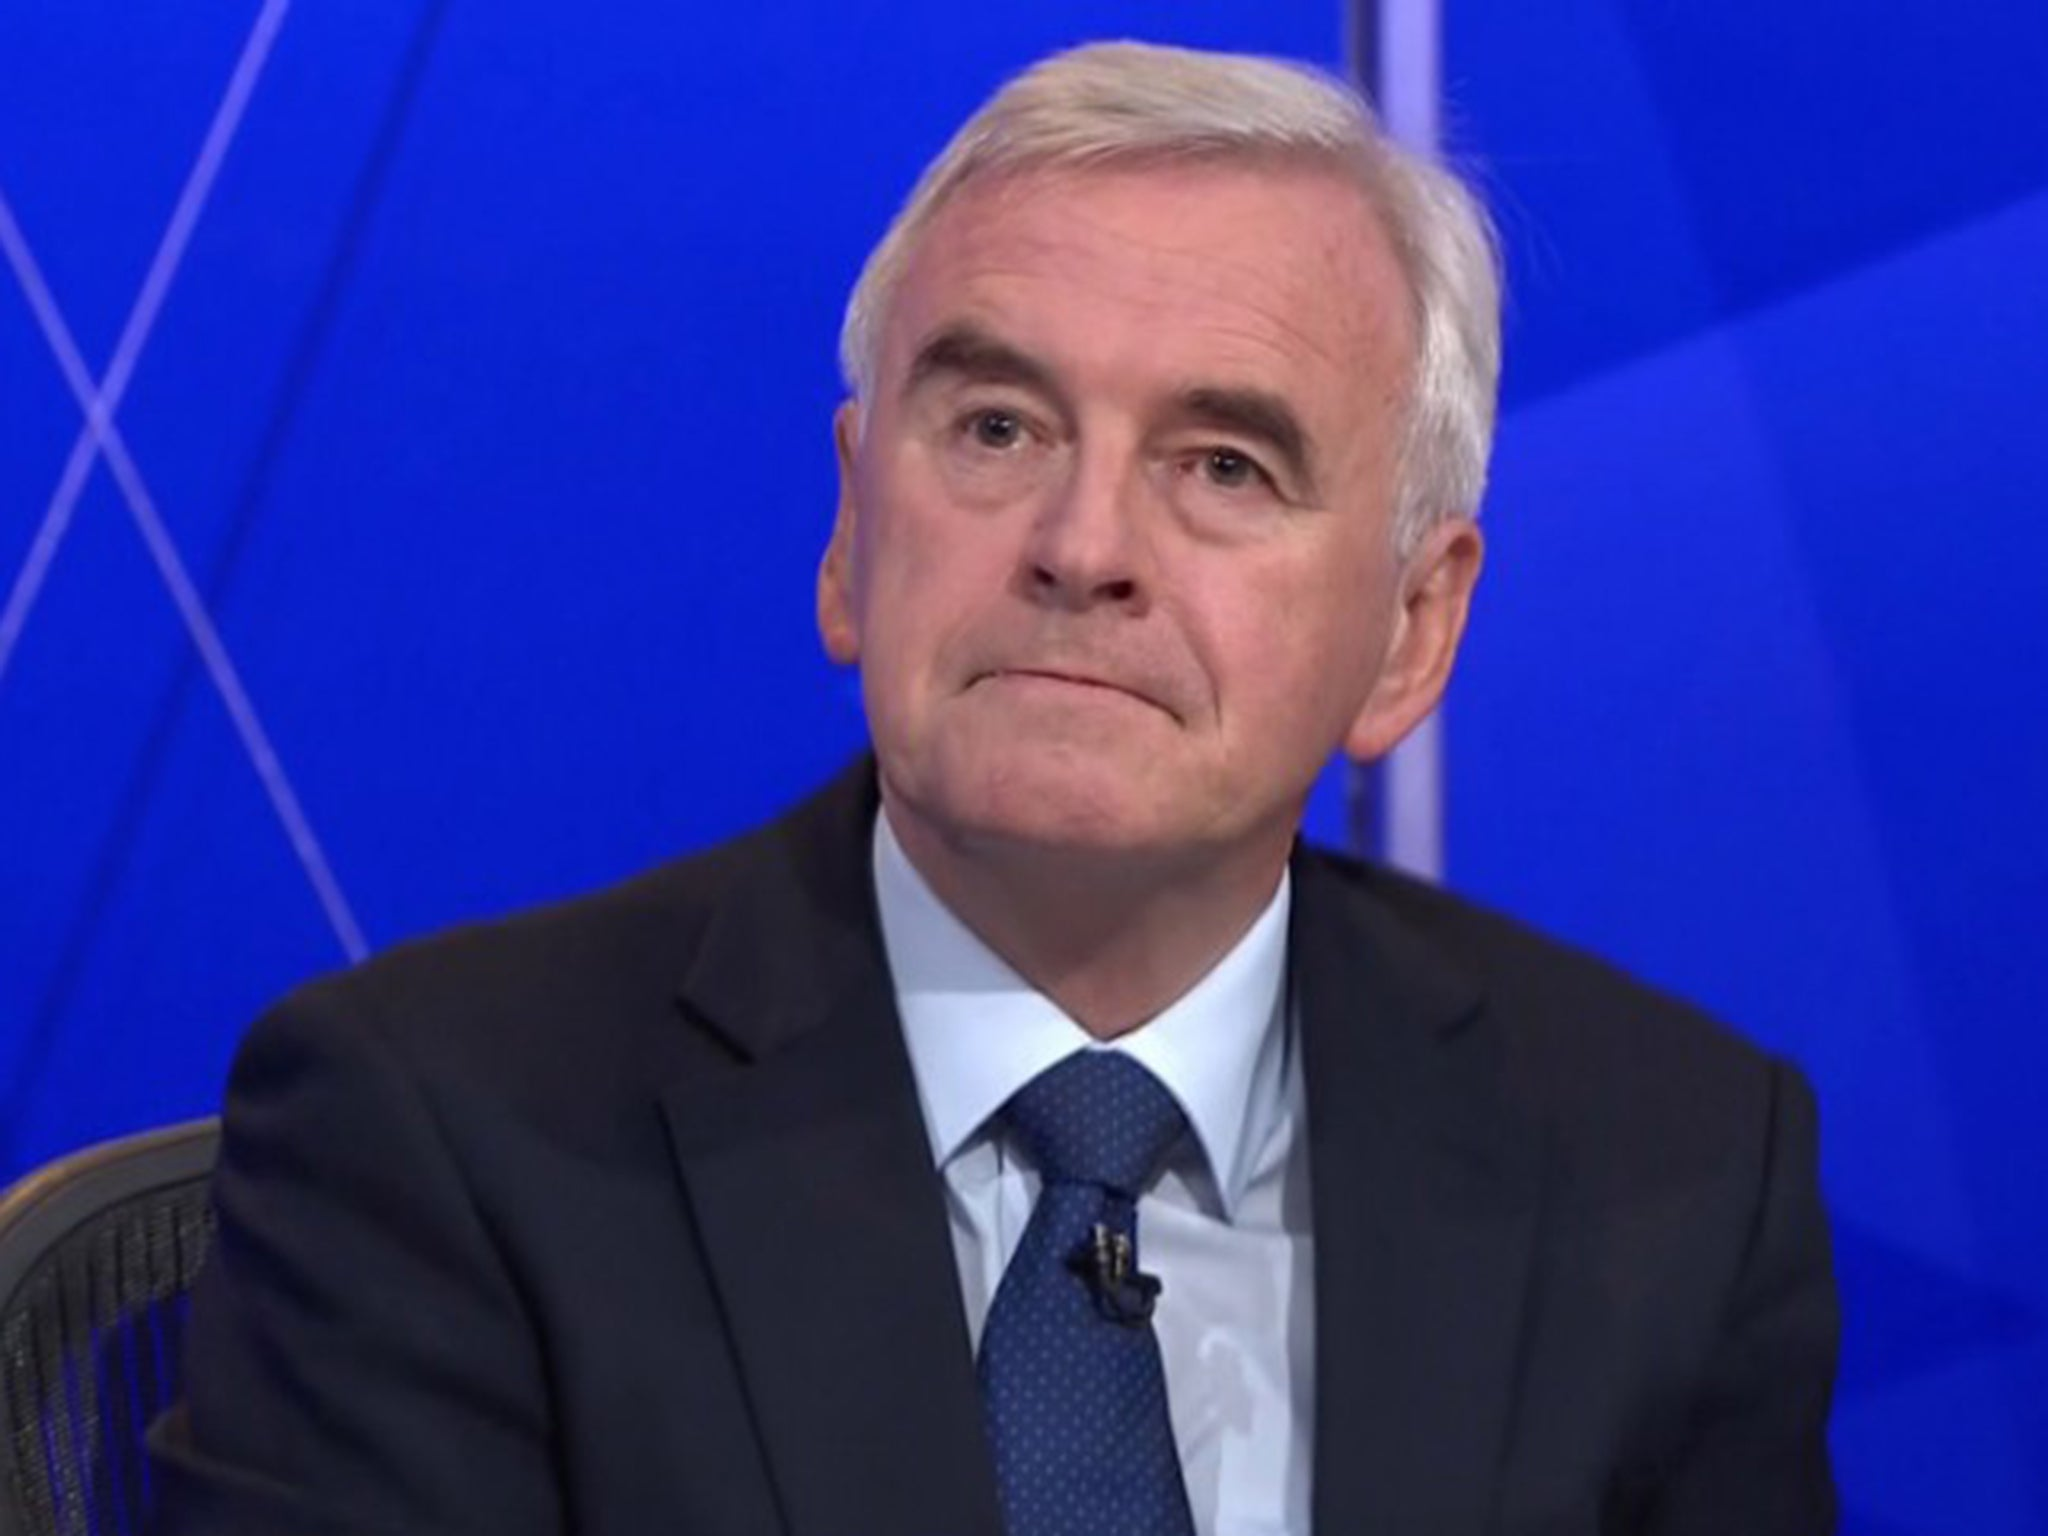 Image result for image of John mcdonnell